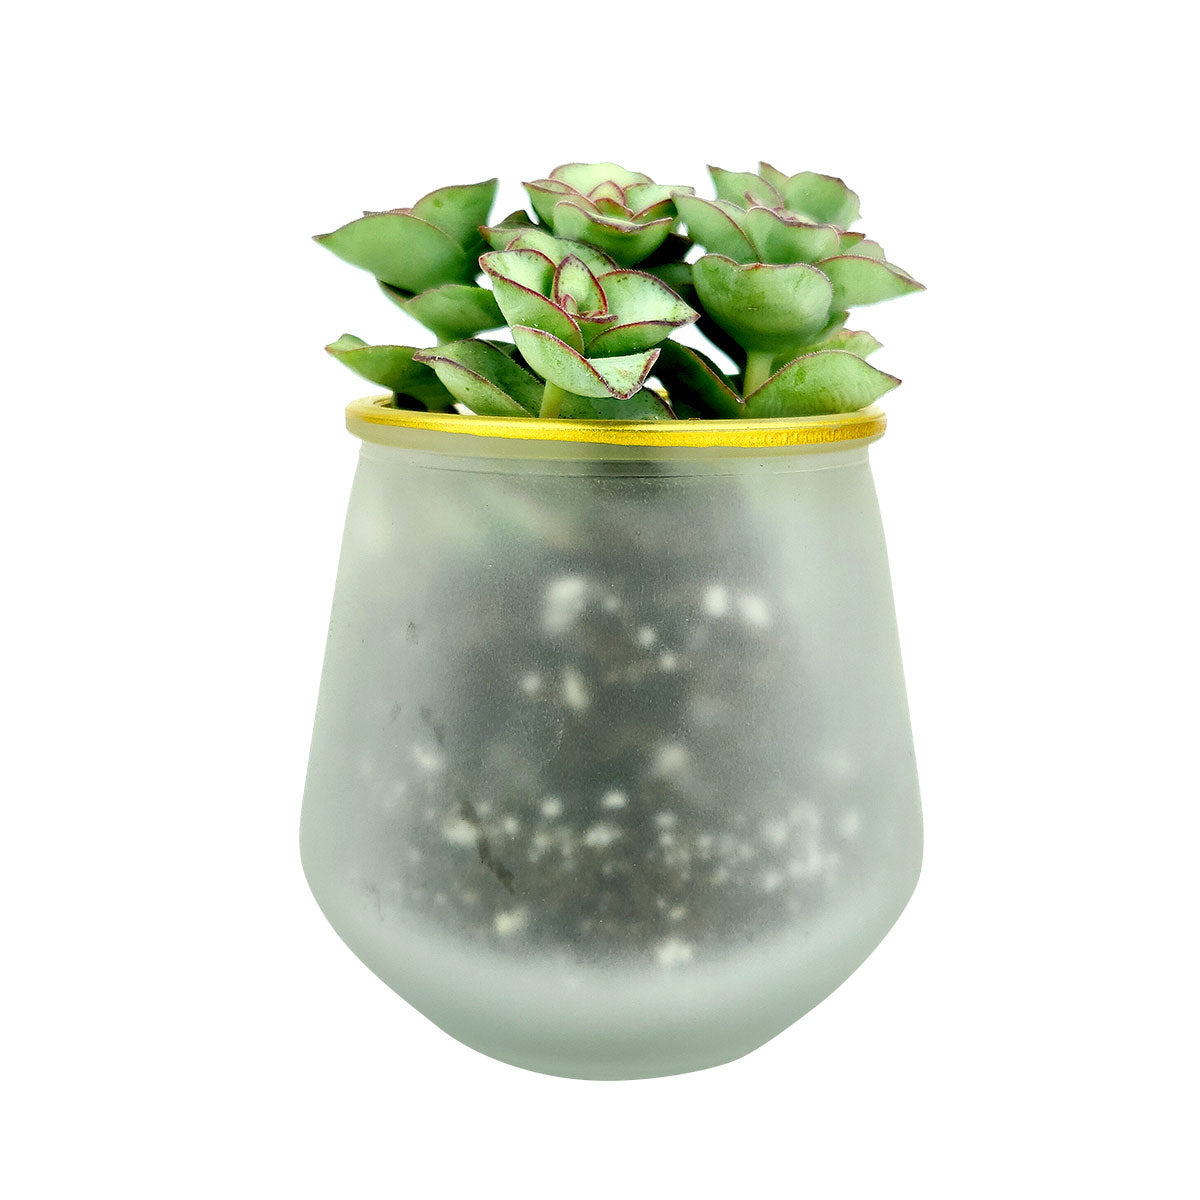 Pot for sale, Mini pot for succulent, Succulent pot decor ideas, Frosted Gold Rim Pot, Flower pot for sale, glass pots for planting, succulent gift for holiday